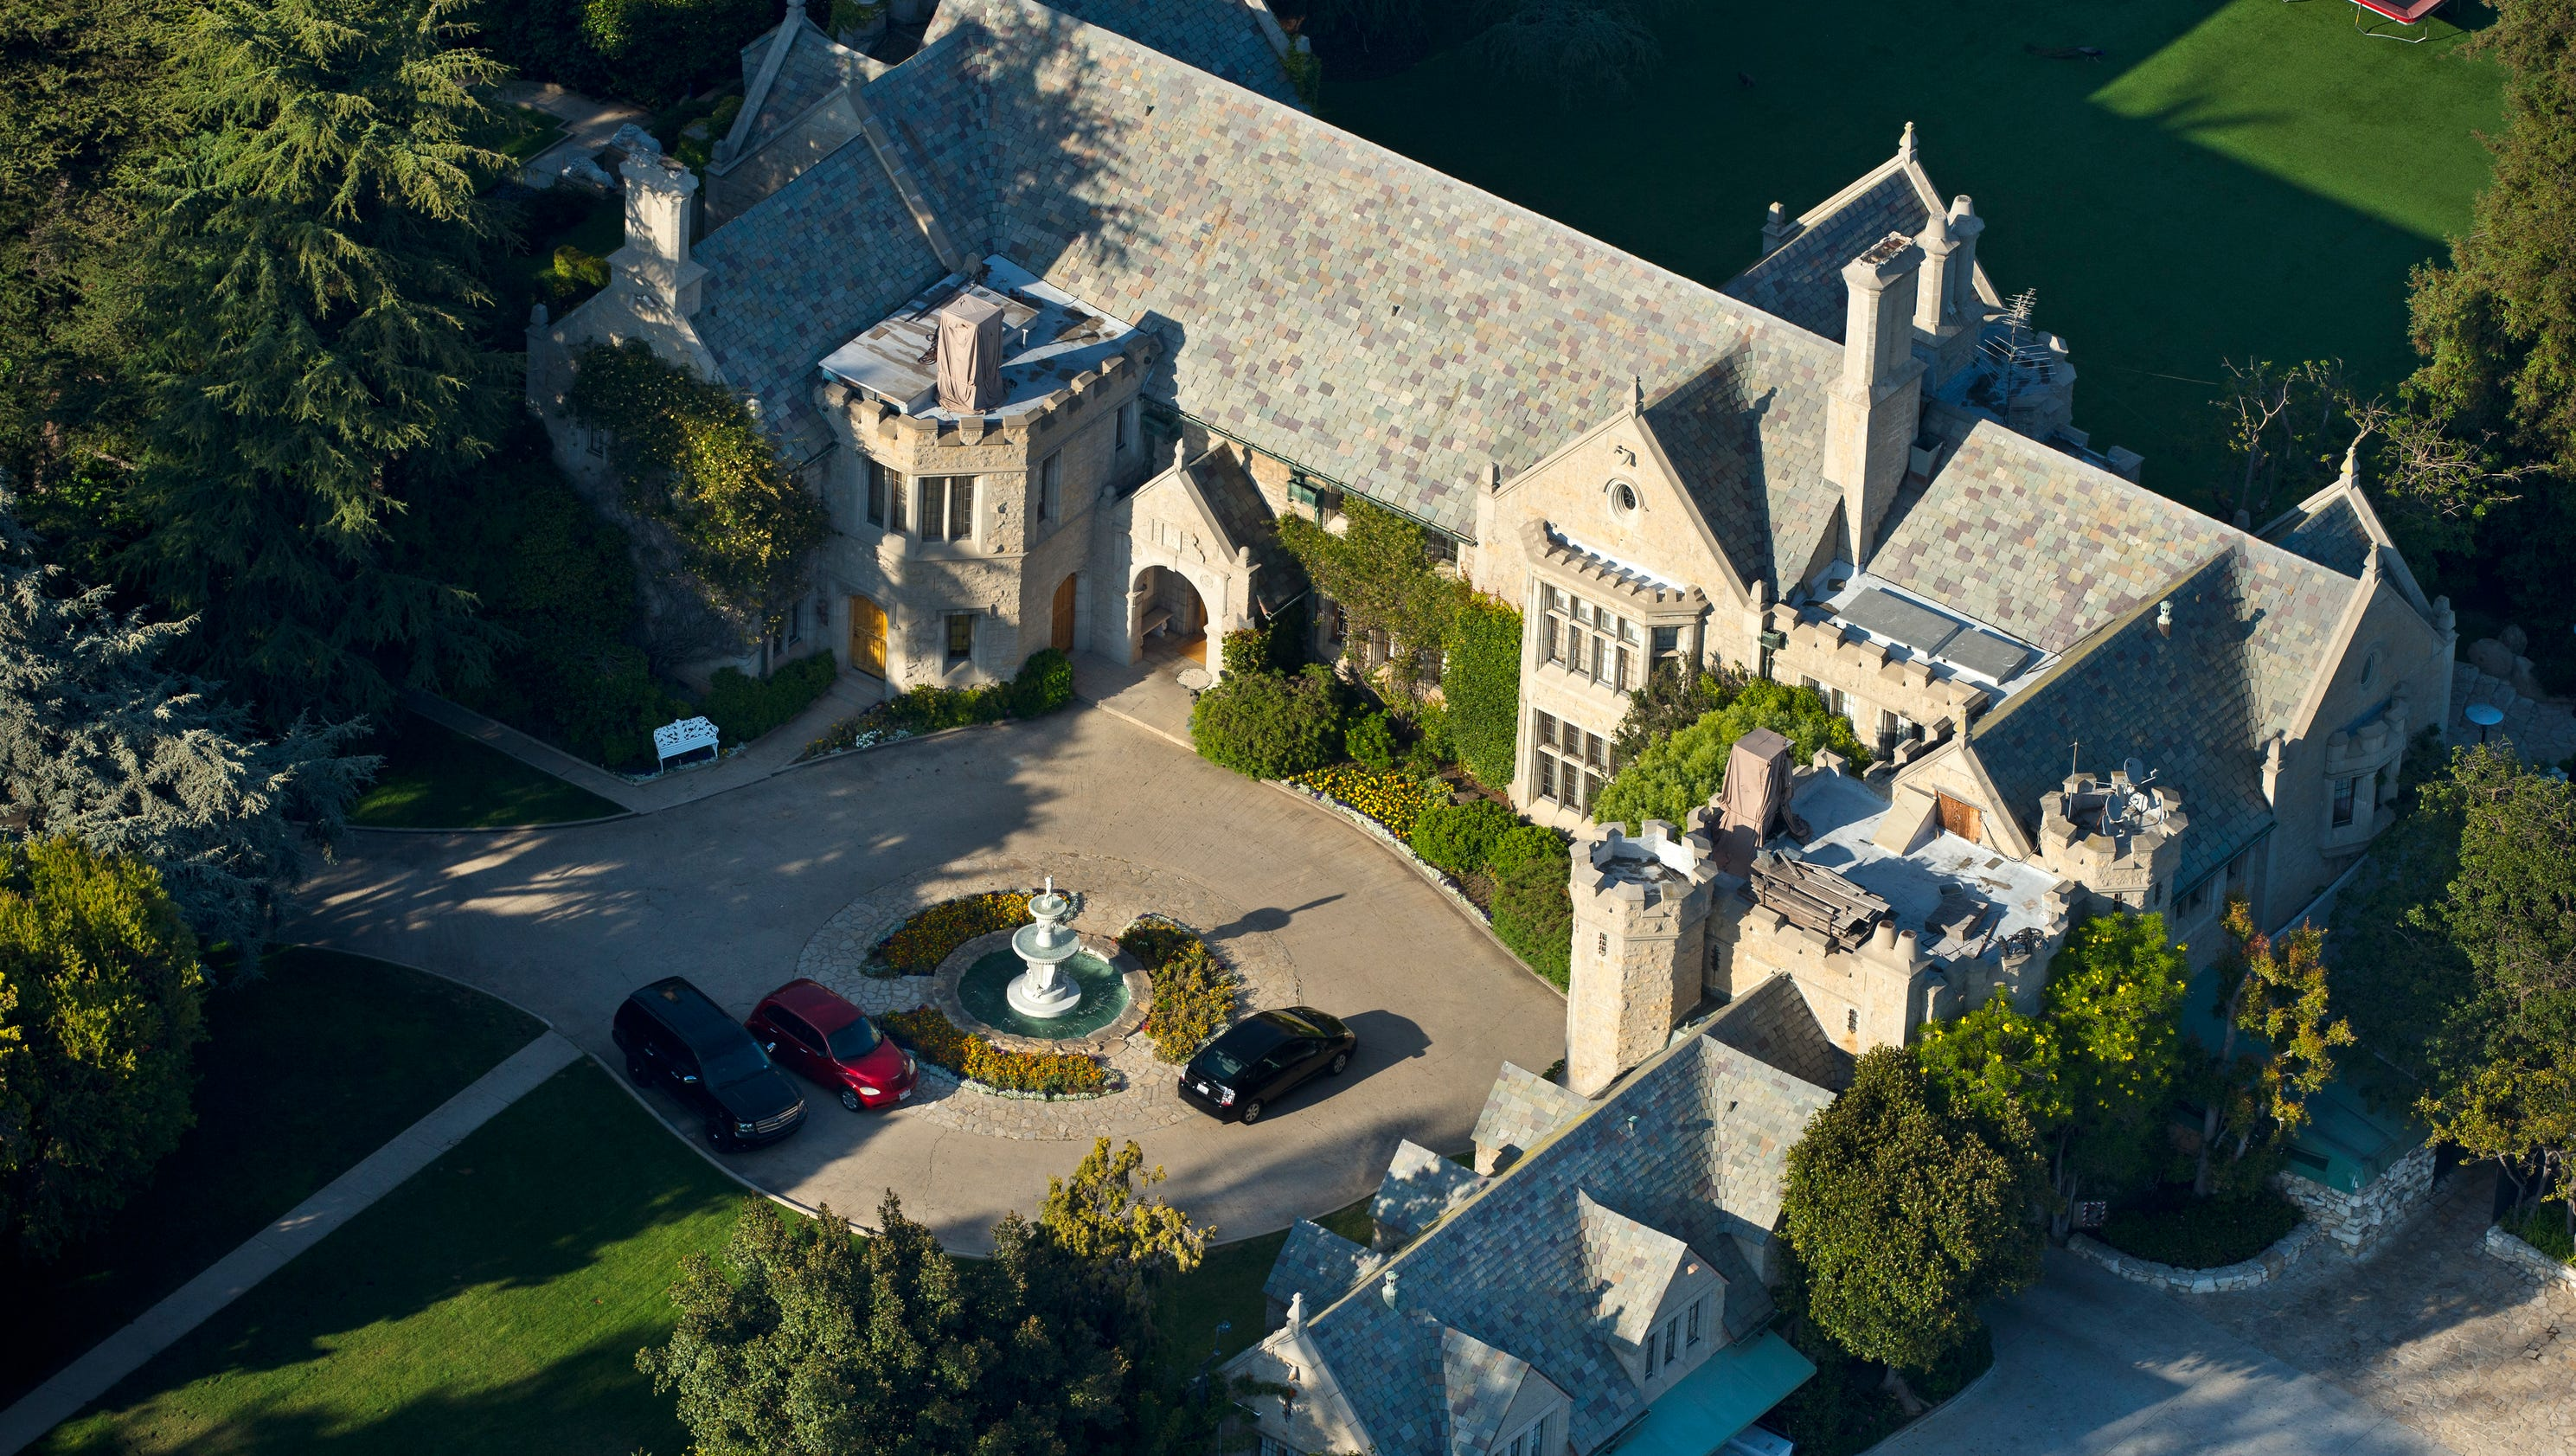 3 Bedroom Mobile Homes Playboy Mansion For Sale But Hugh Hefner Wants To Stay